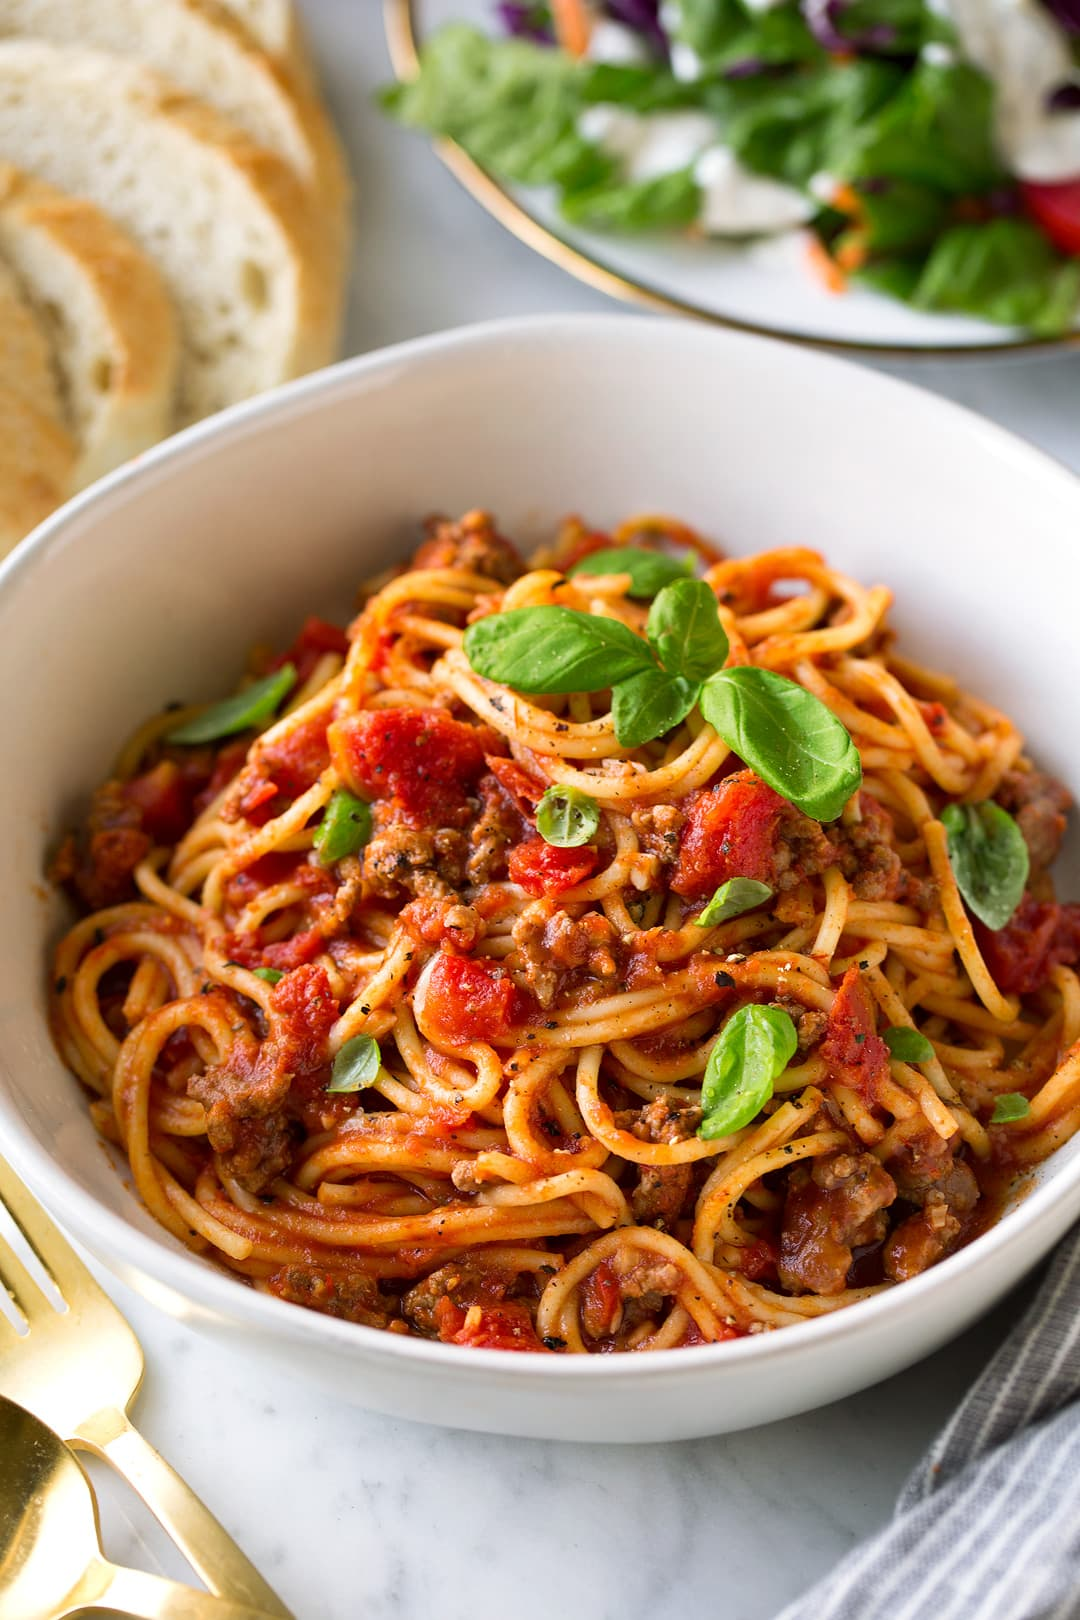 Instant Pot Spaghetti shown here in a single serving in a white pasta bowl with fresh bread and a side salad in the background.